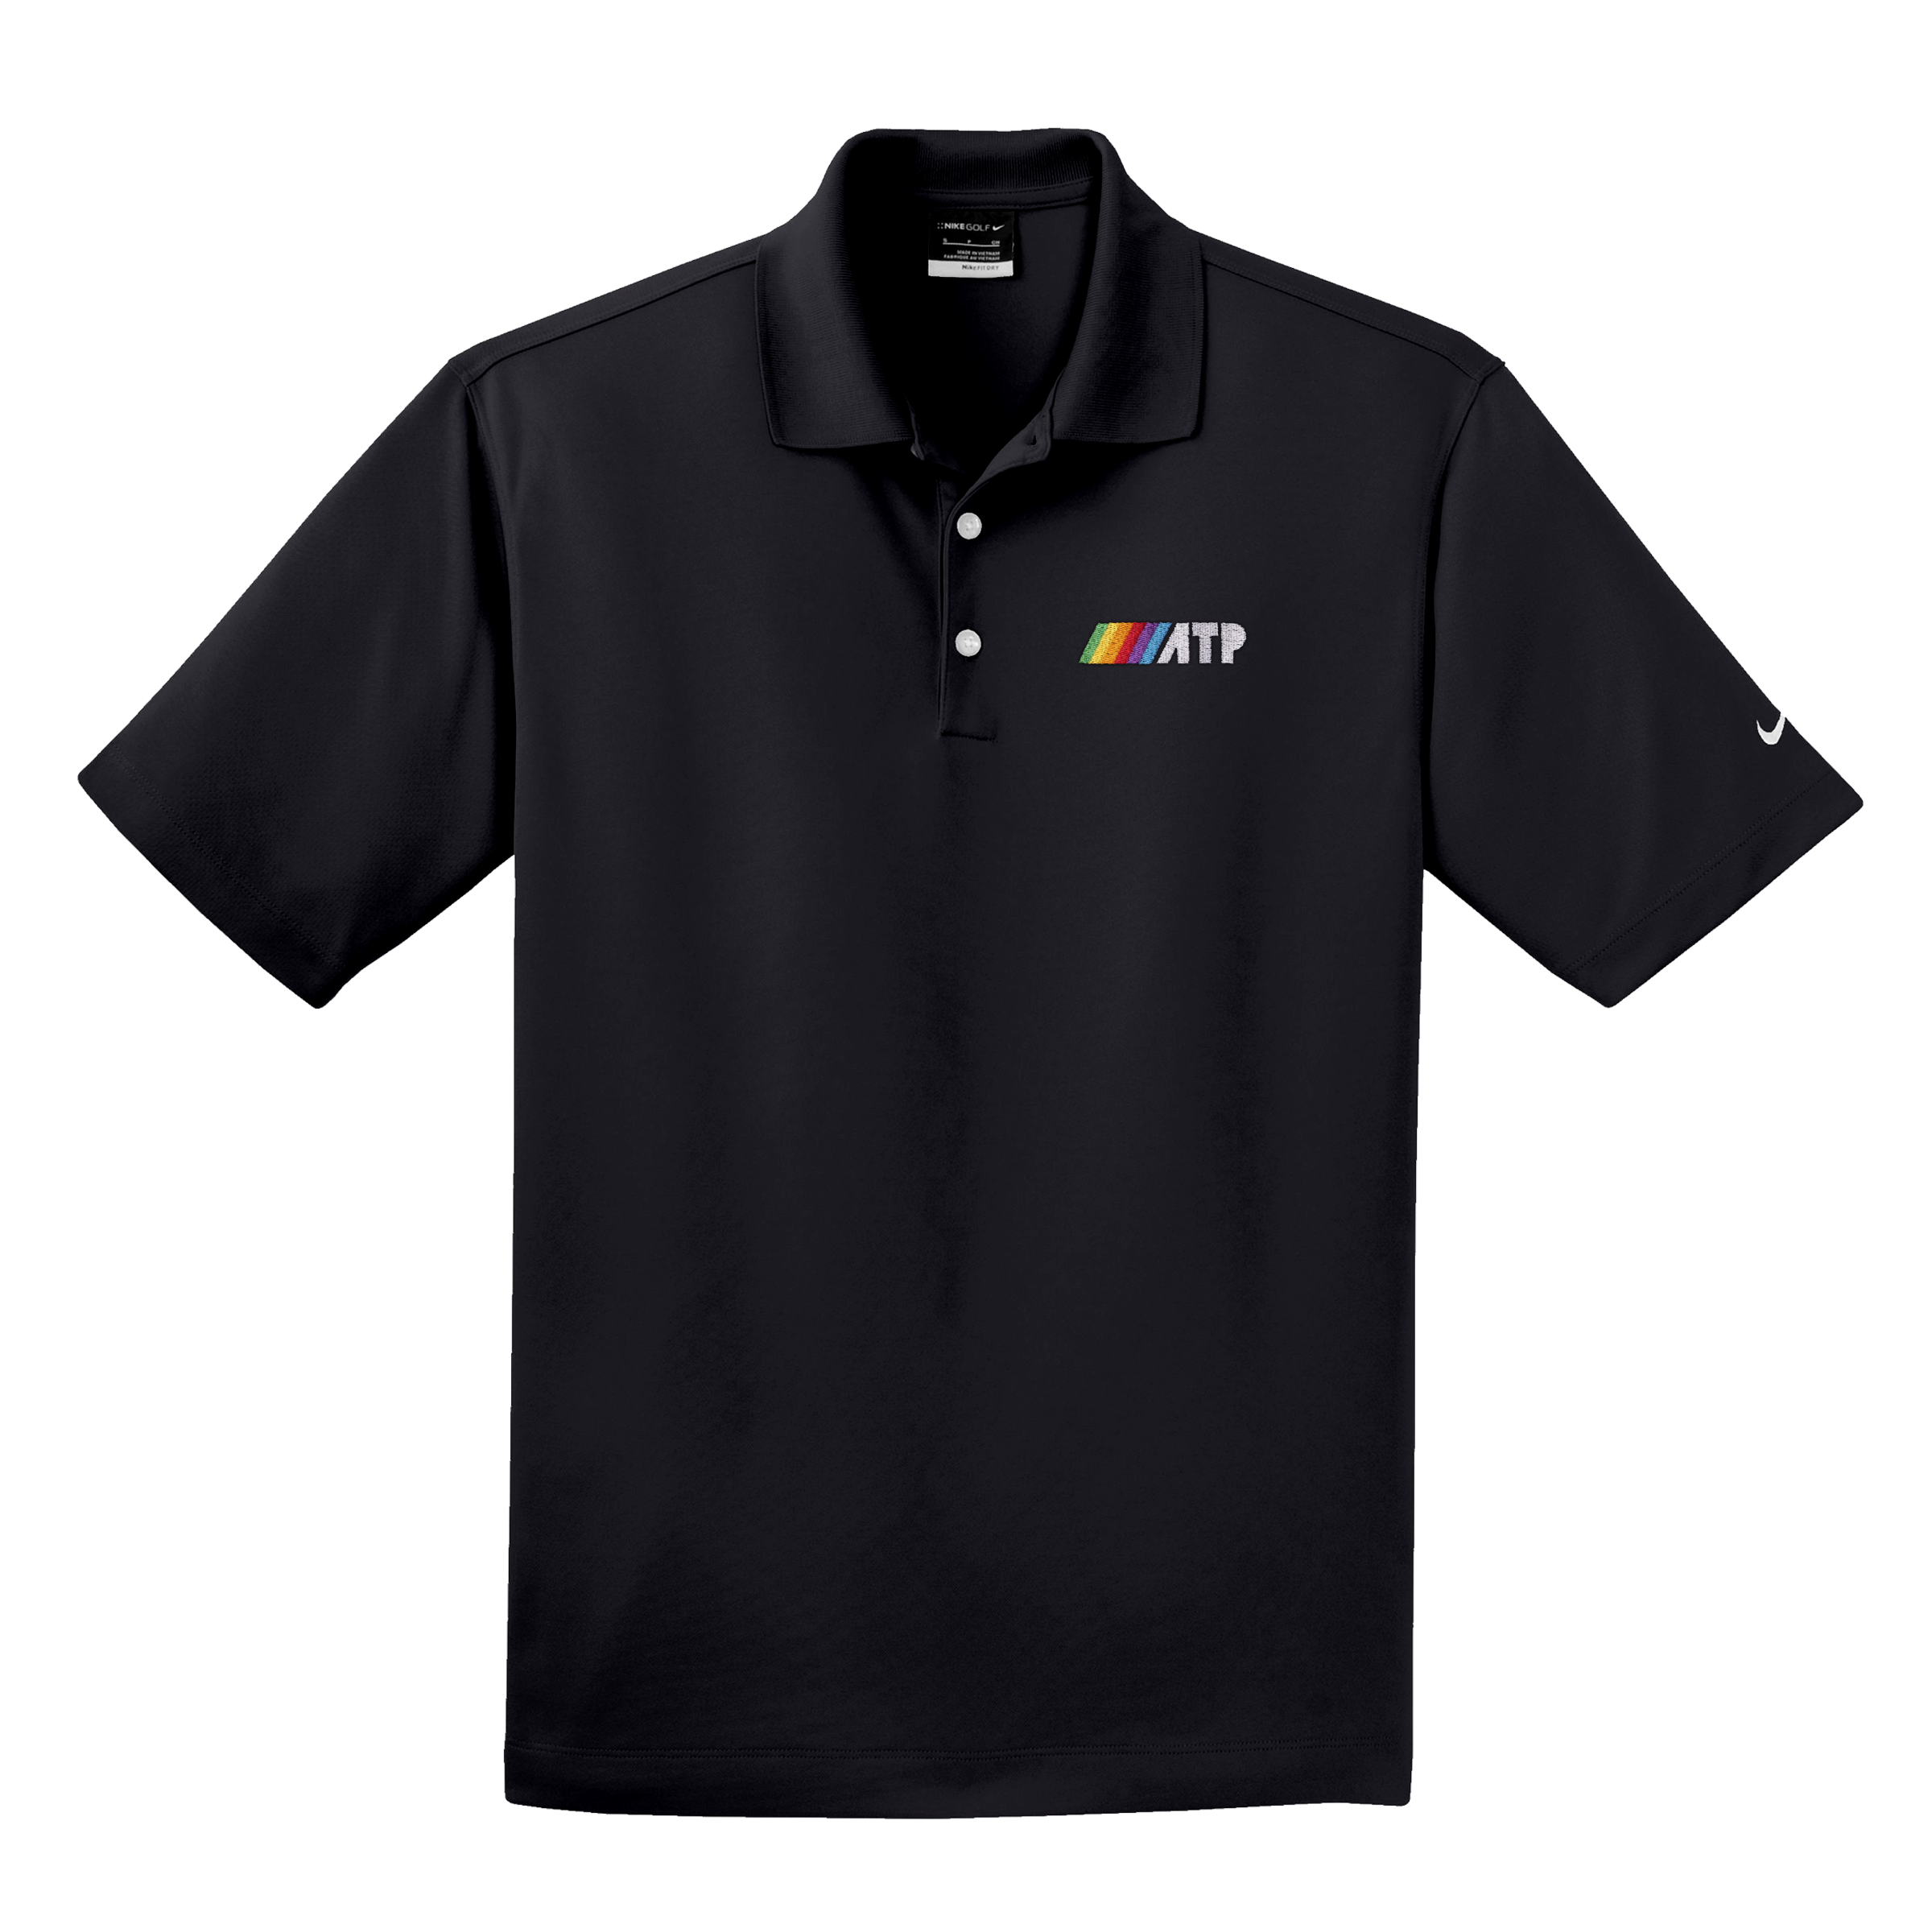 ///ATP Embroidered Polo